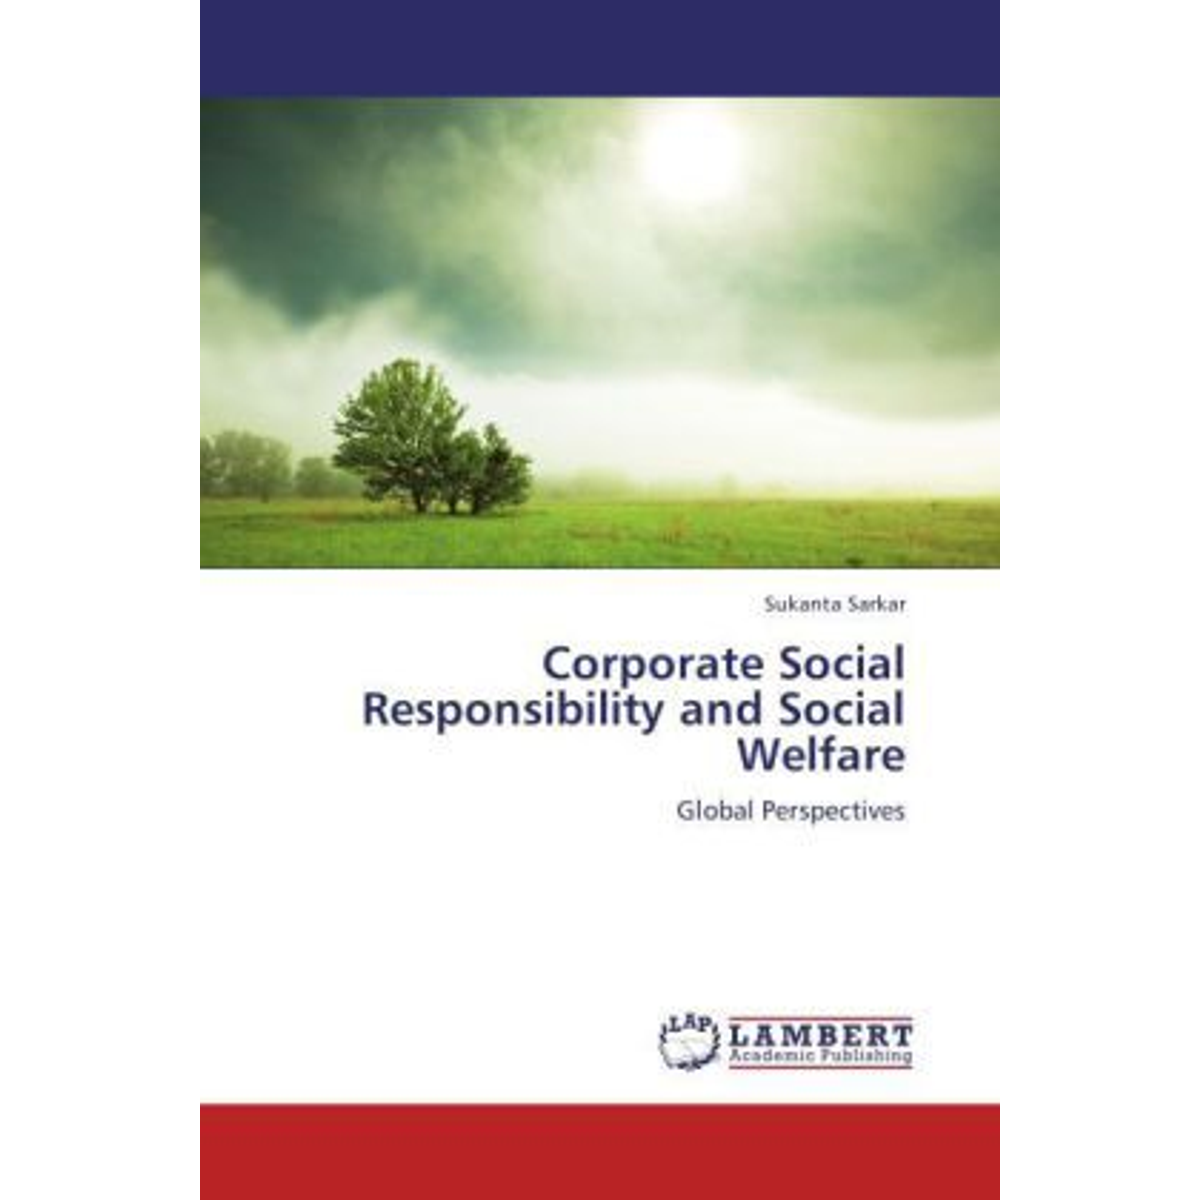 Corporate Social Responsibility and Social Welfare - Global Perspectives